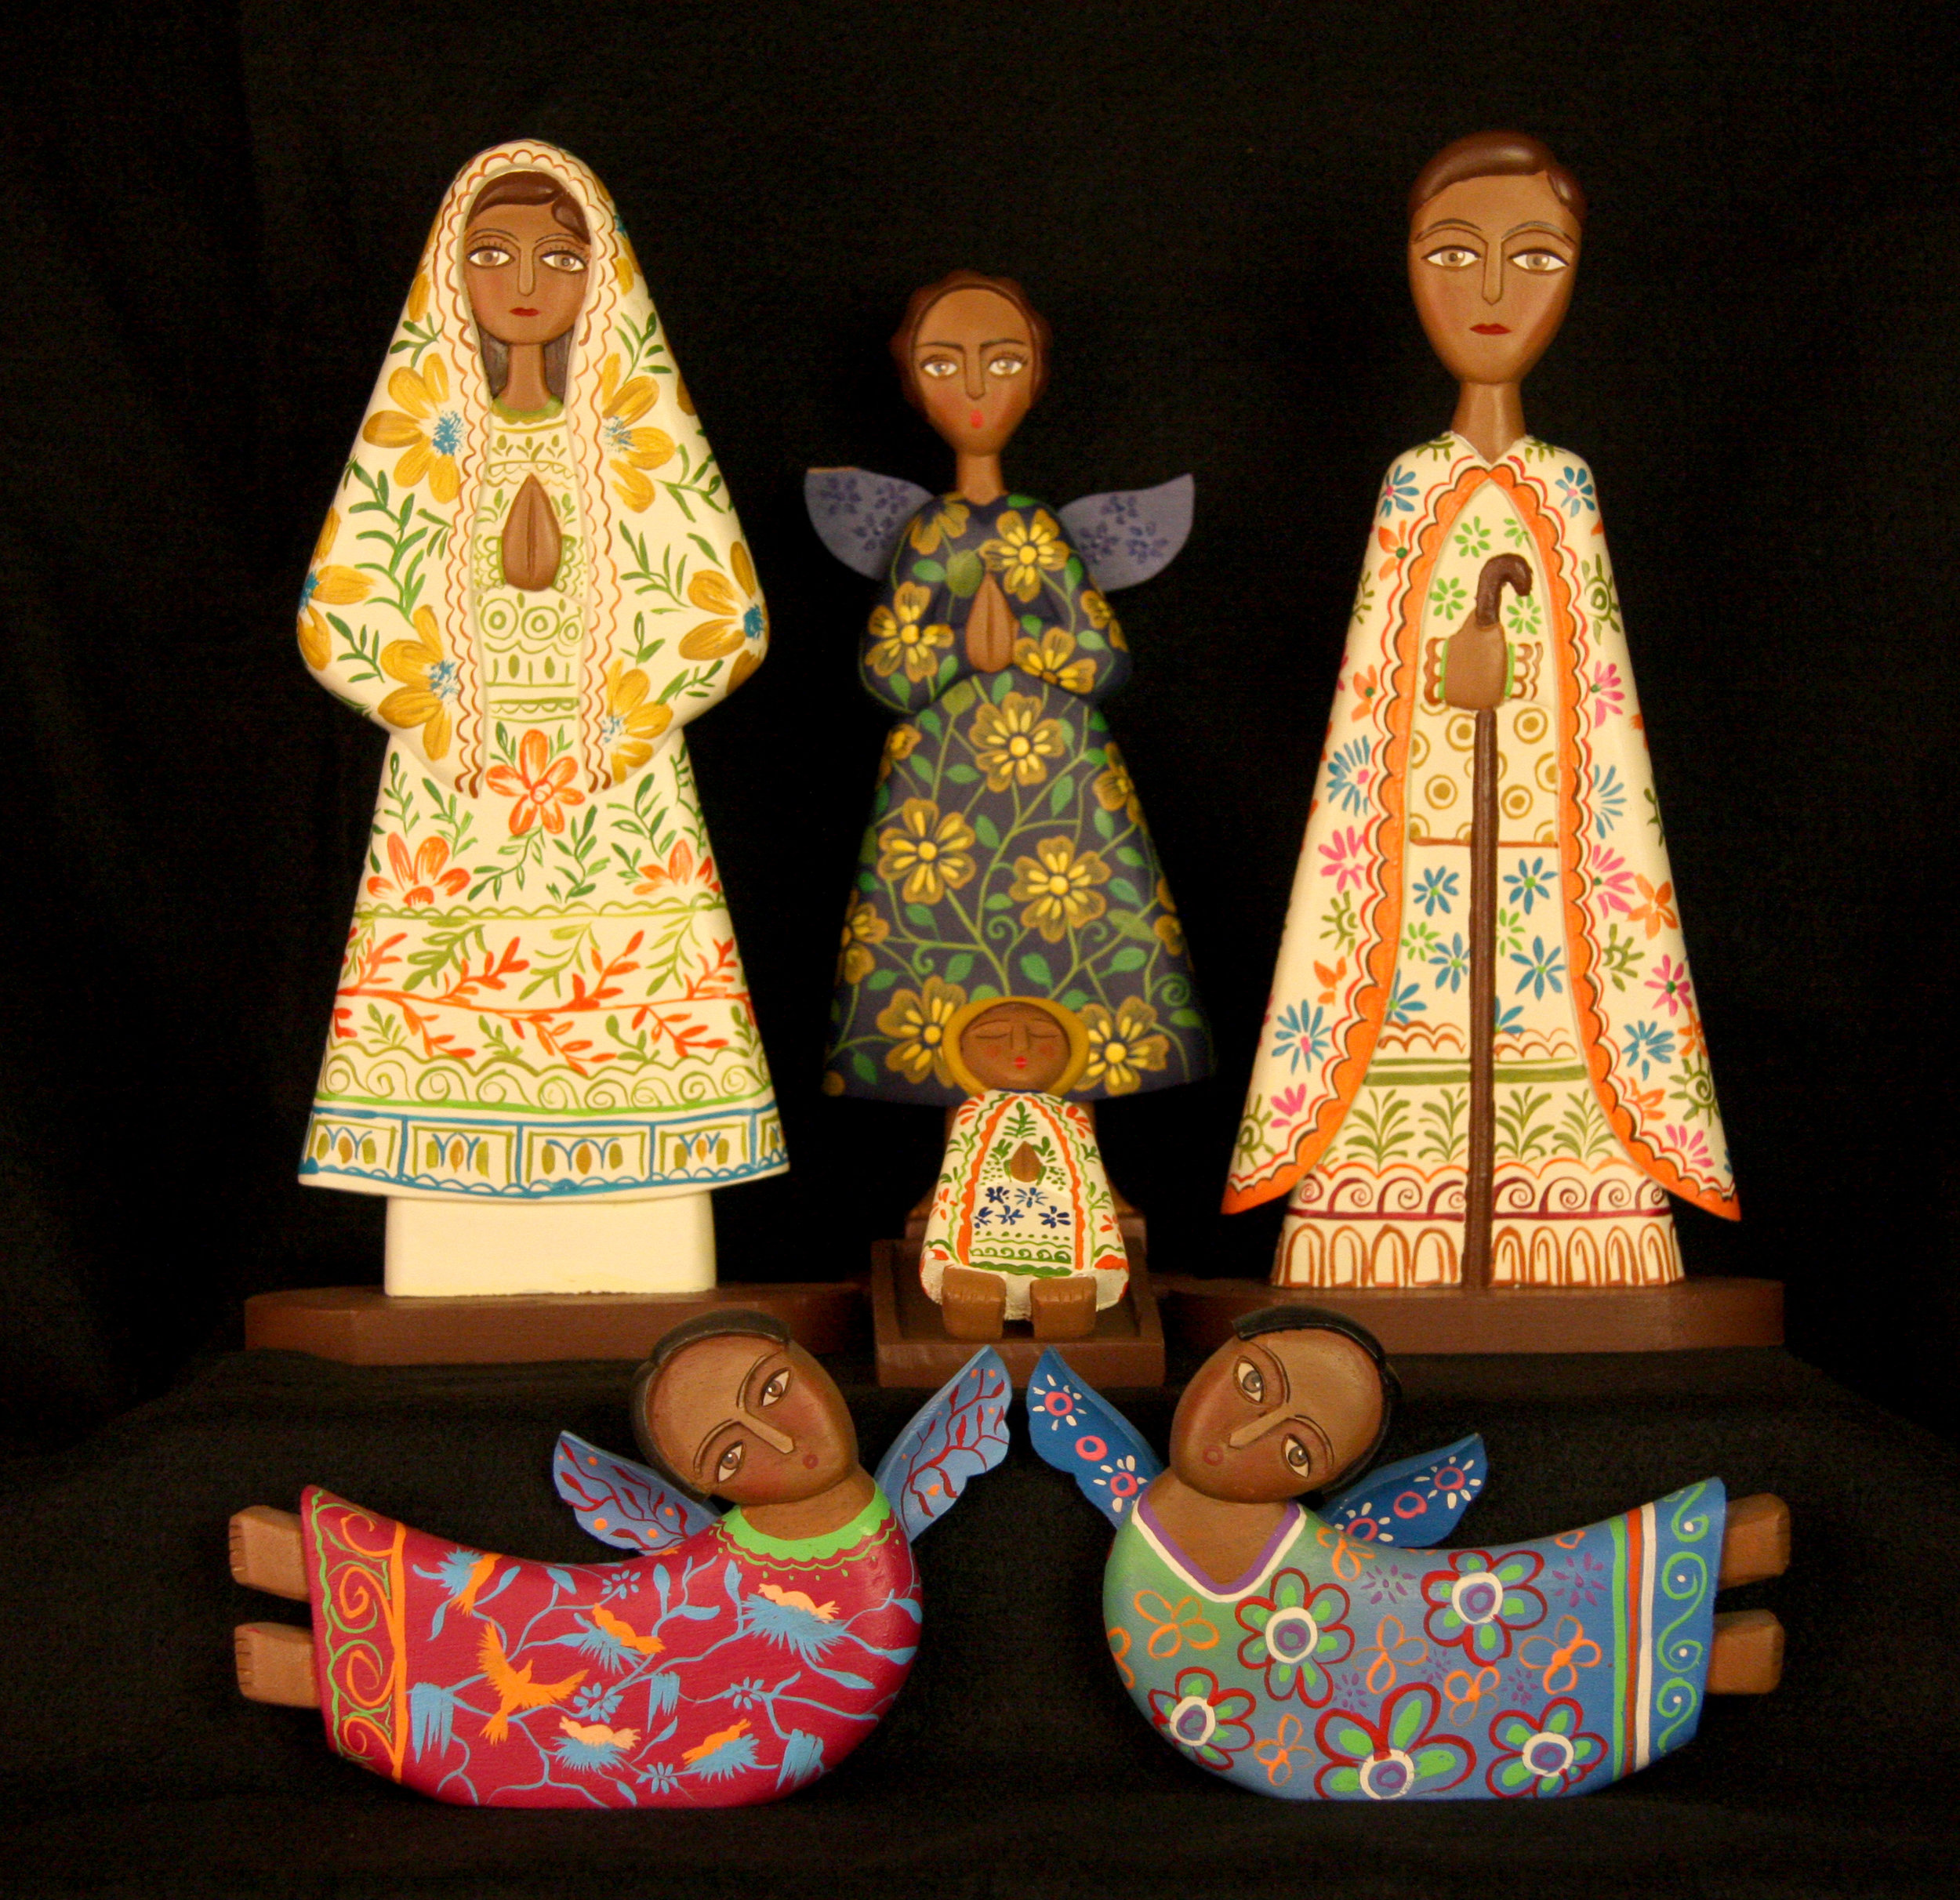 The Jimenez family of Masaya, Nicaragua, carves Nativity figures from cedar wood, which are then brightly painted by local artists. The father, mother and children are all involved in the process. In addition to the Holy Family, this Nativity includes the wise men and a heavenly host of twenty angels. It will be part of the  World Nativities  exhibition Friday, November 25, 2016 through Sunday, January 8, 2017.